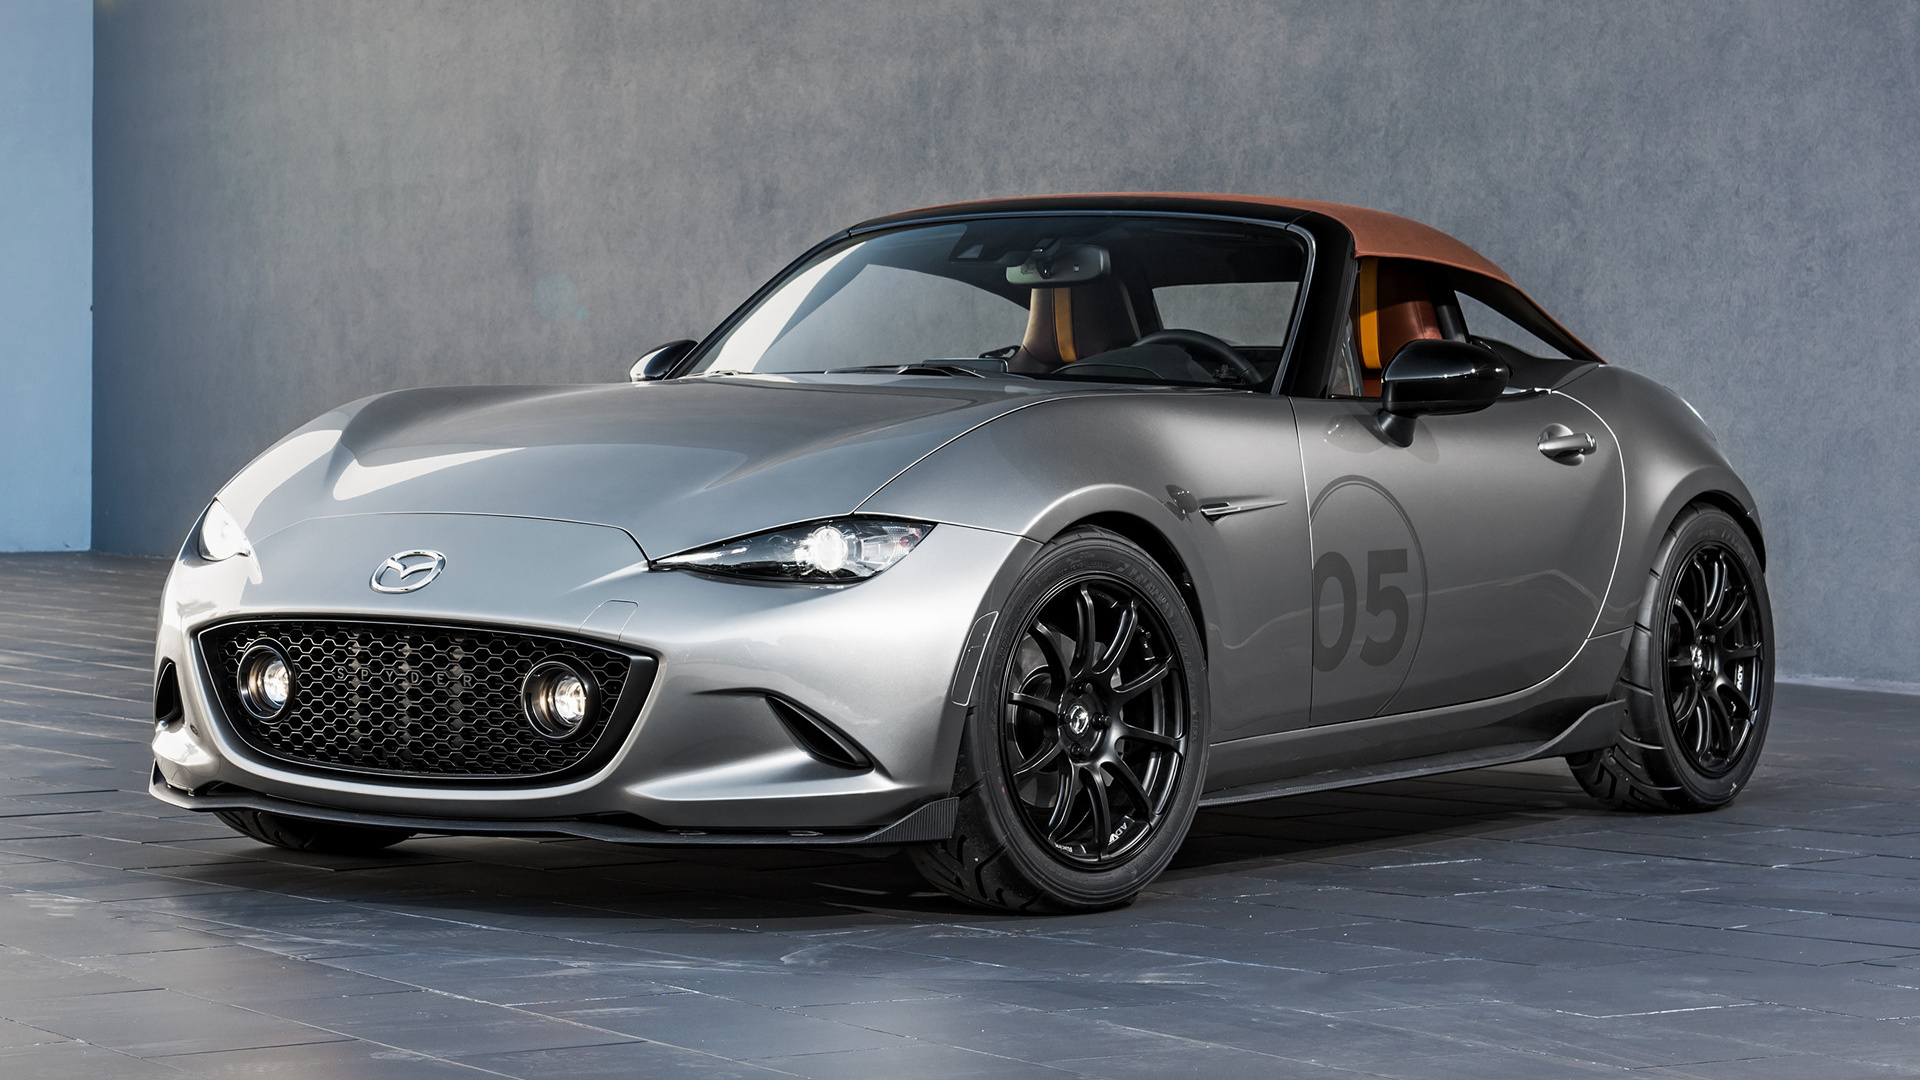 2017 Dodge Ram >> 2015 Mazda MX-5 Spyder Concept - Wallpapers and HD Images ...